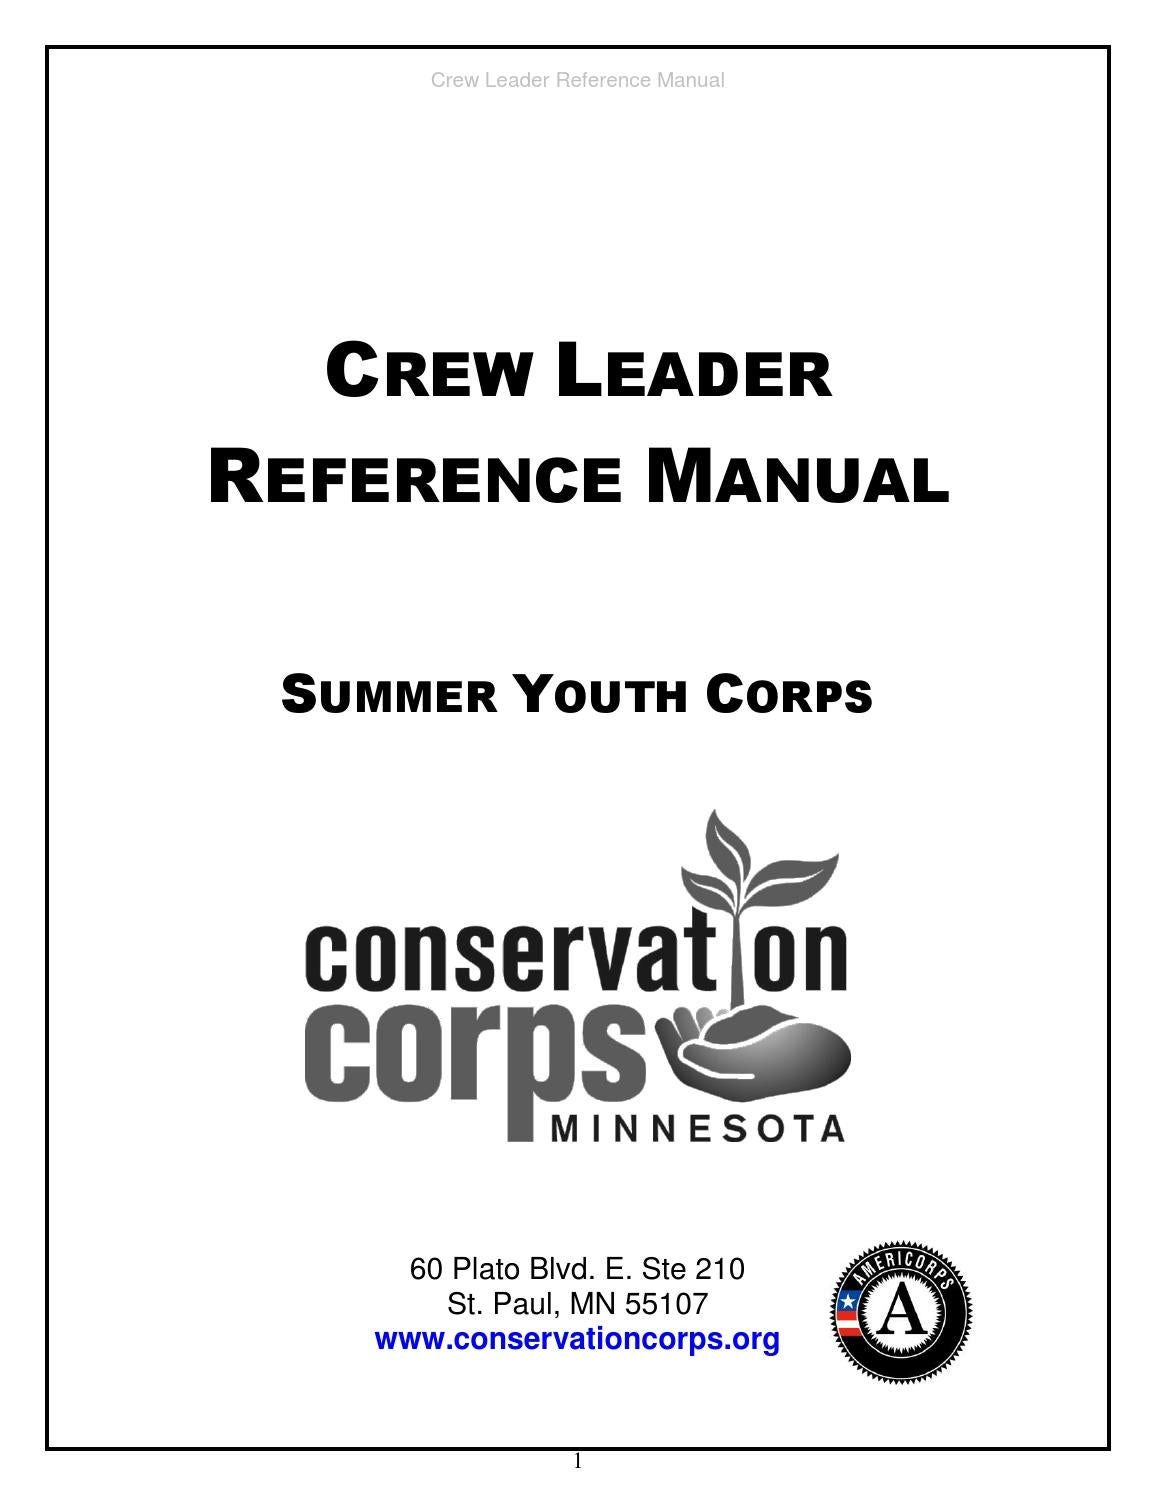 Crew leader reference manual 2015 online draft by Connie